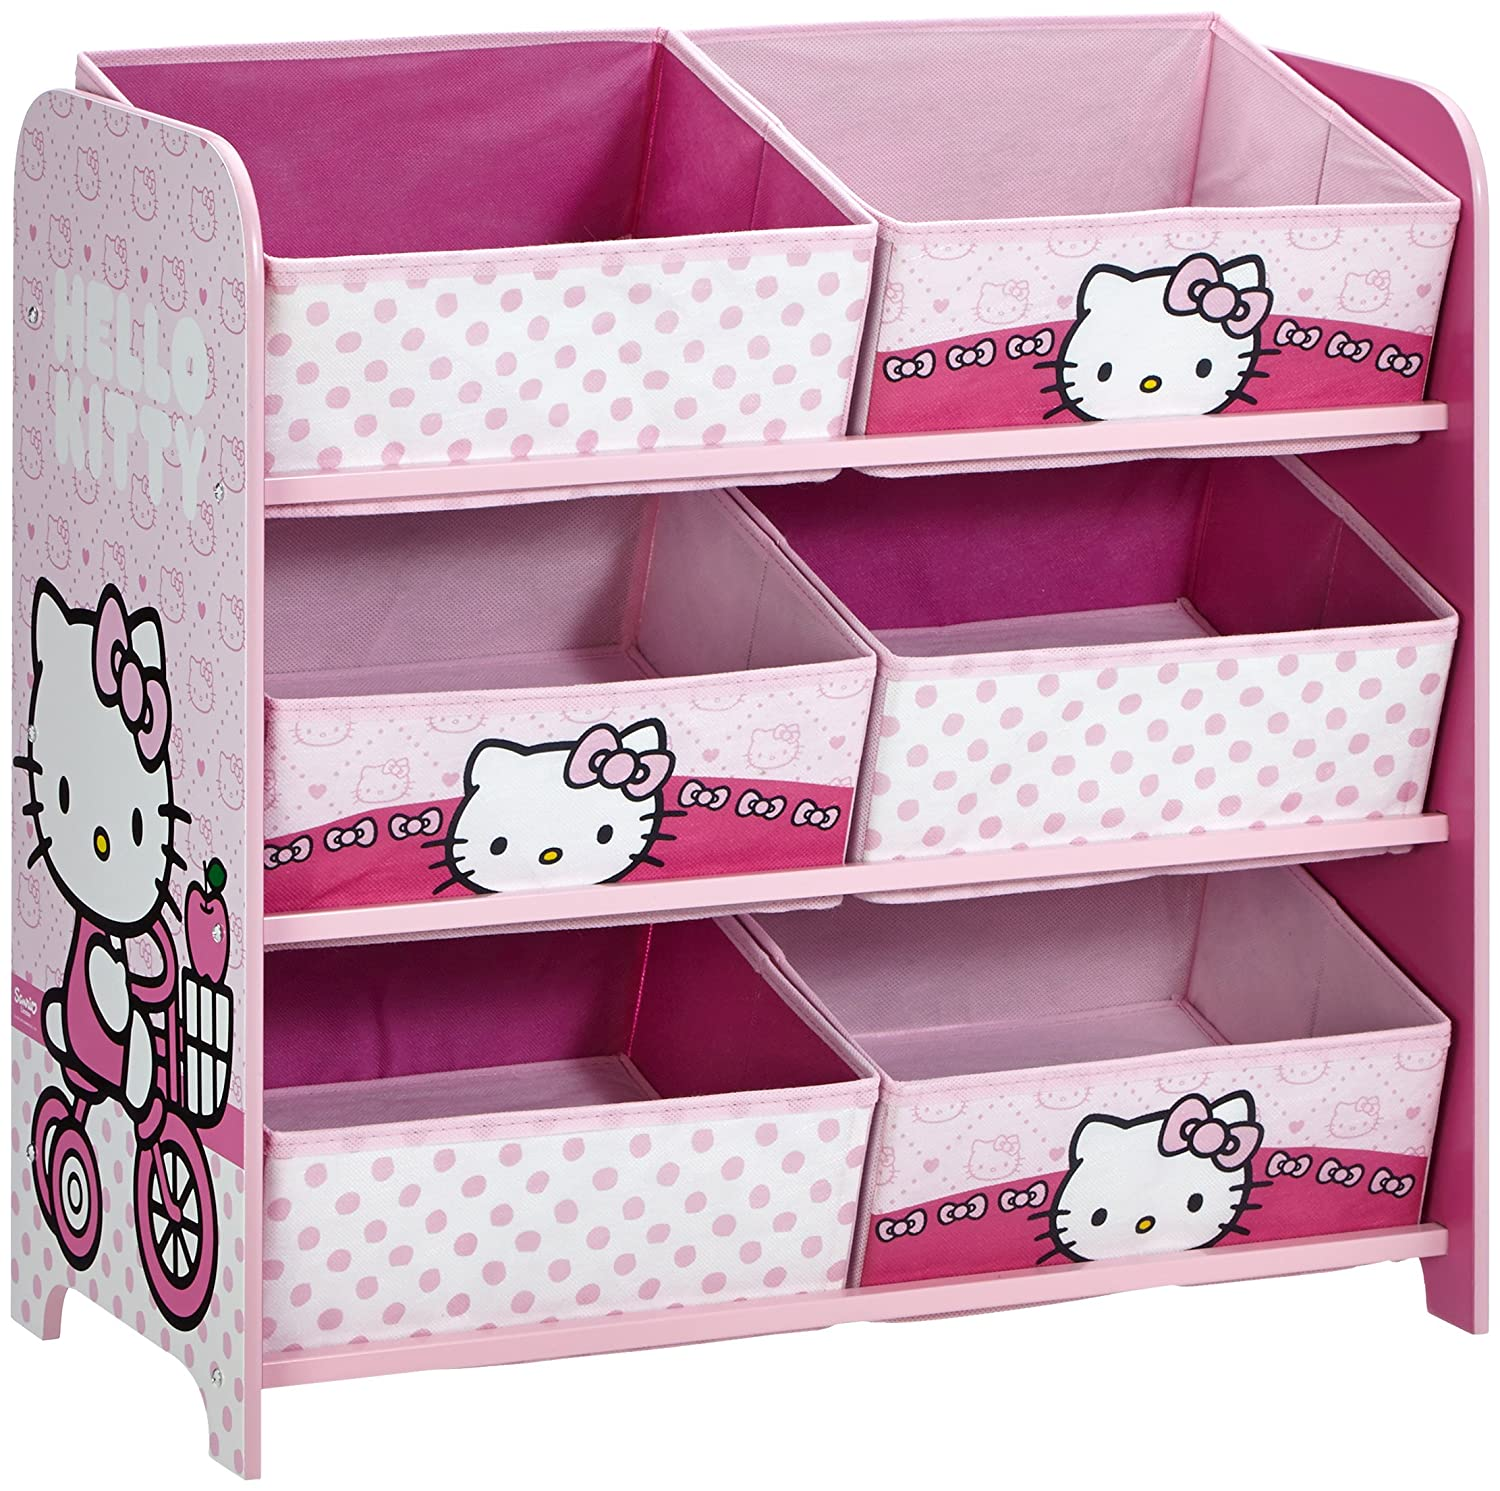 great meuble chaussure hello kitty with meuble rangement jouet fille. Black Bedroom Furniture Sets. Home Design Ideas